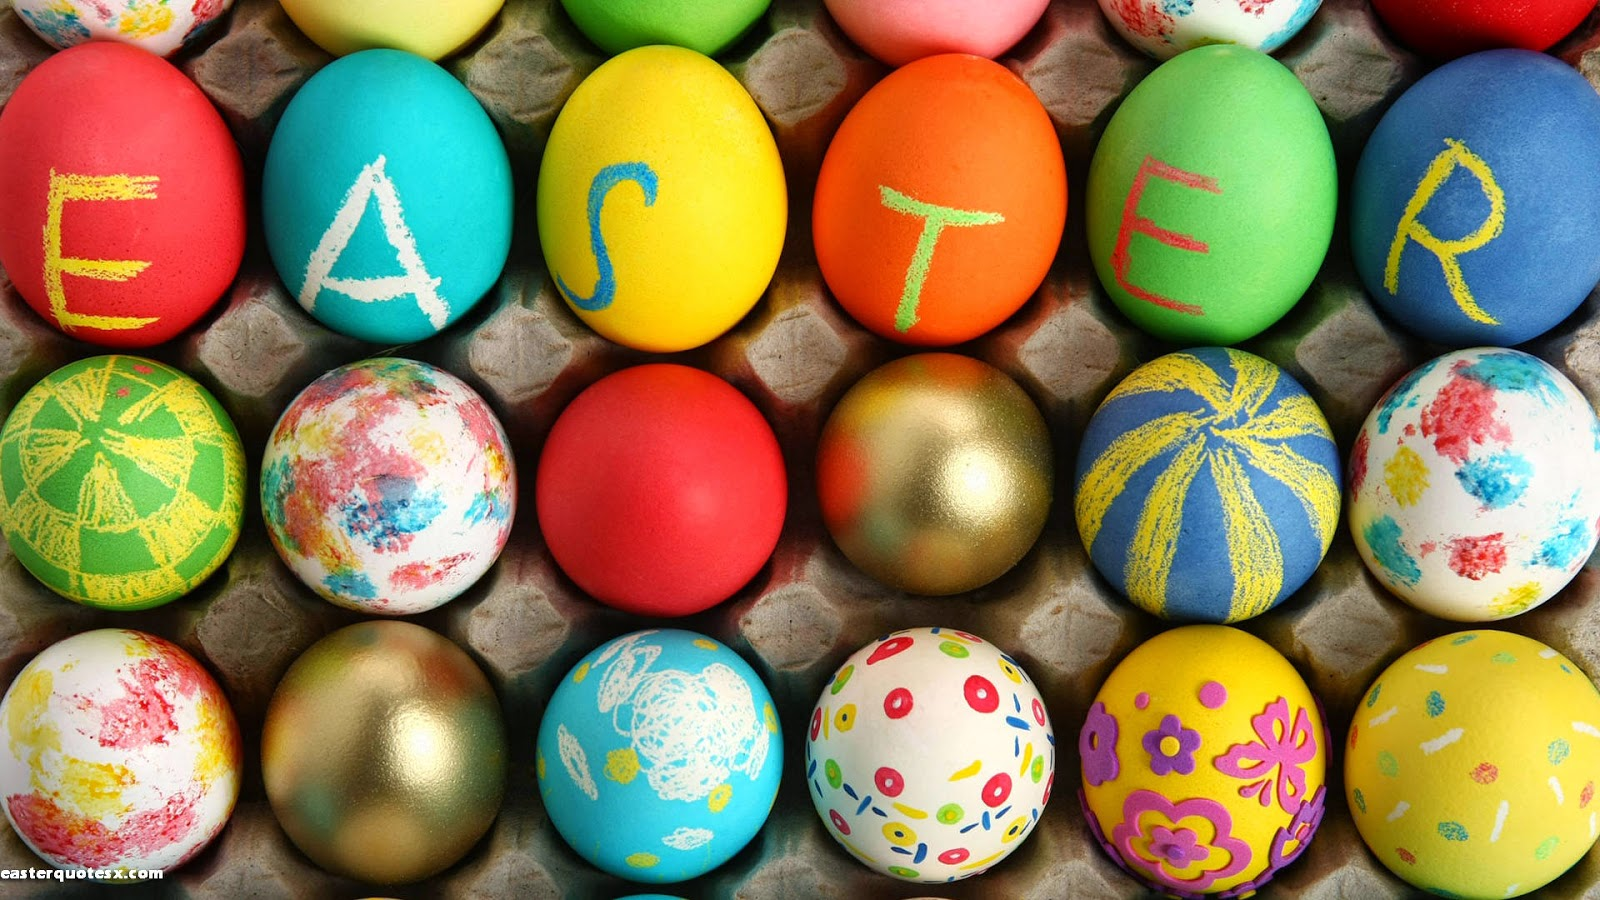 Easter Eggs 2015 Pictures - Easter Eggs 2015 Images - Easter EggEaster Eggs 2015 Pictures - Easter Eggs 2015 Images - Easter Eggs 2015 WallPaper Easter Eggs 2015 Pictures - Easter Eggs 2015 Images - Easter Eggs 2015 WallPaper Easter Eggs 2015 Pictures - Easter Eggs 2015 Images - Easter Eggs 2015 WallPaper